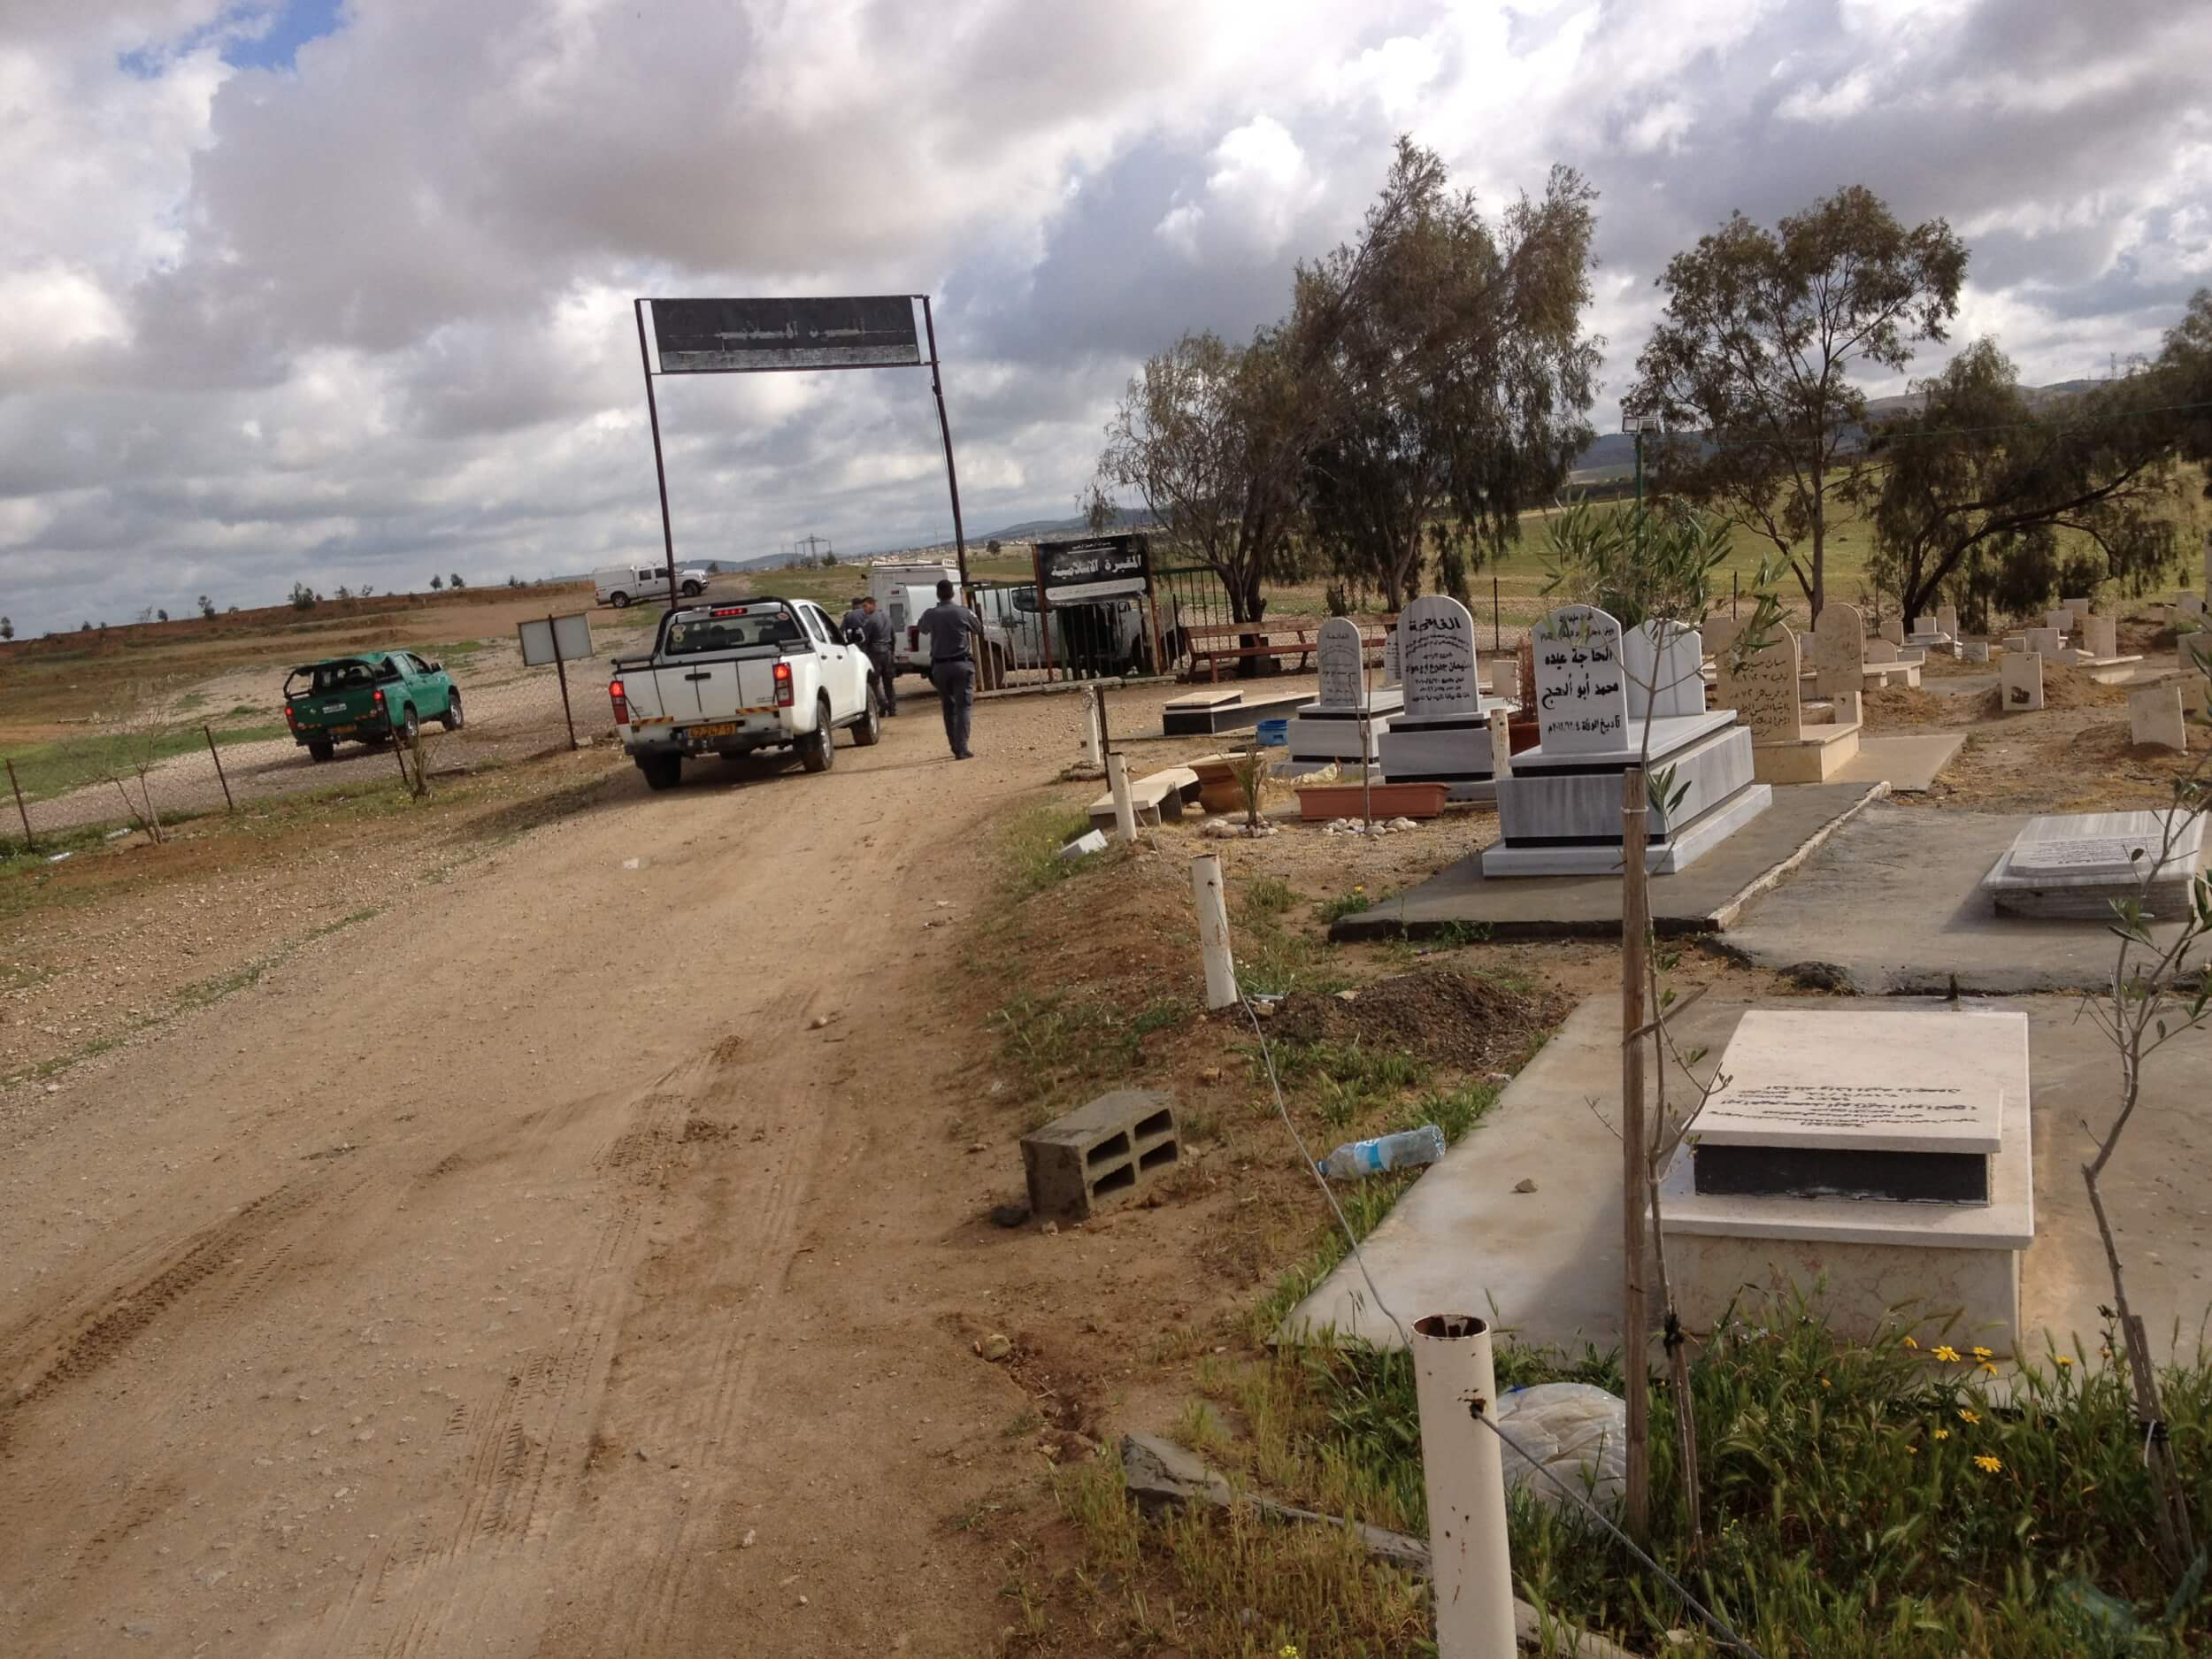 Israeli authorities enter al-Araqib village and its cemetery. (Photo: Rabbis for Human Rights)